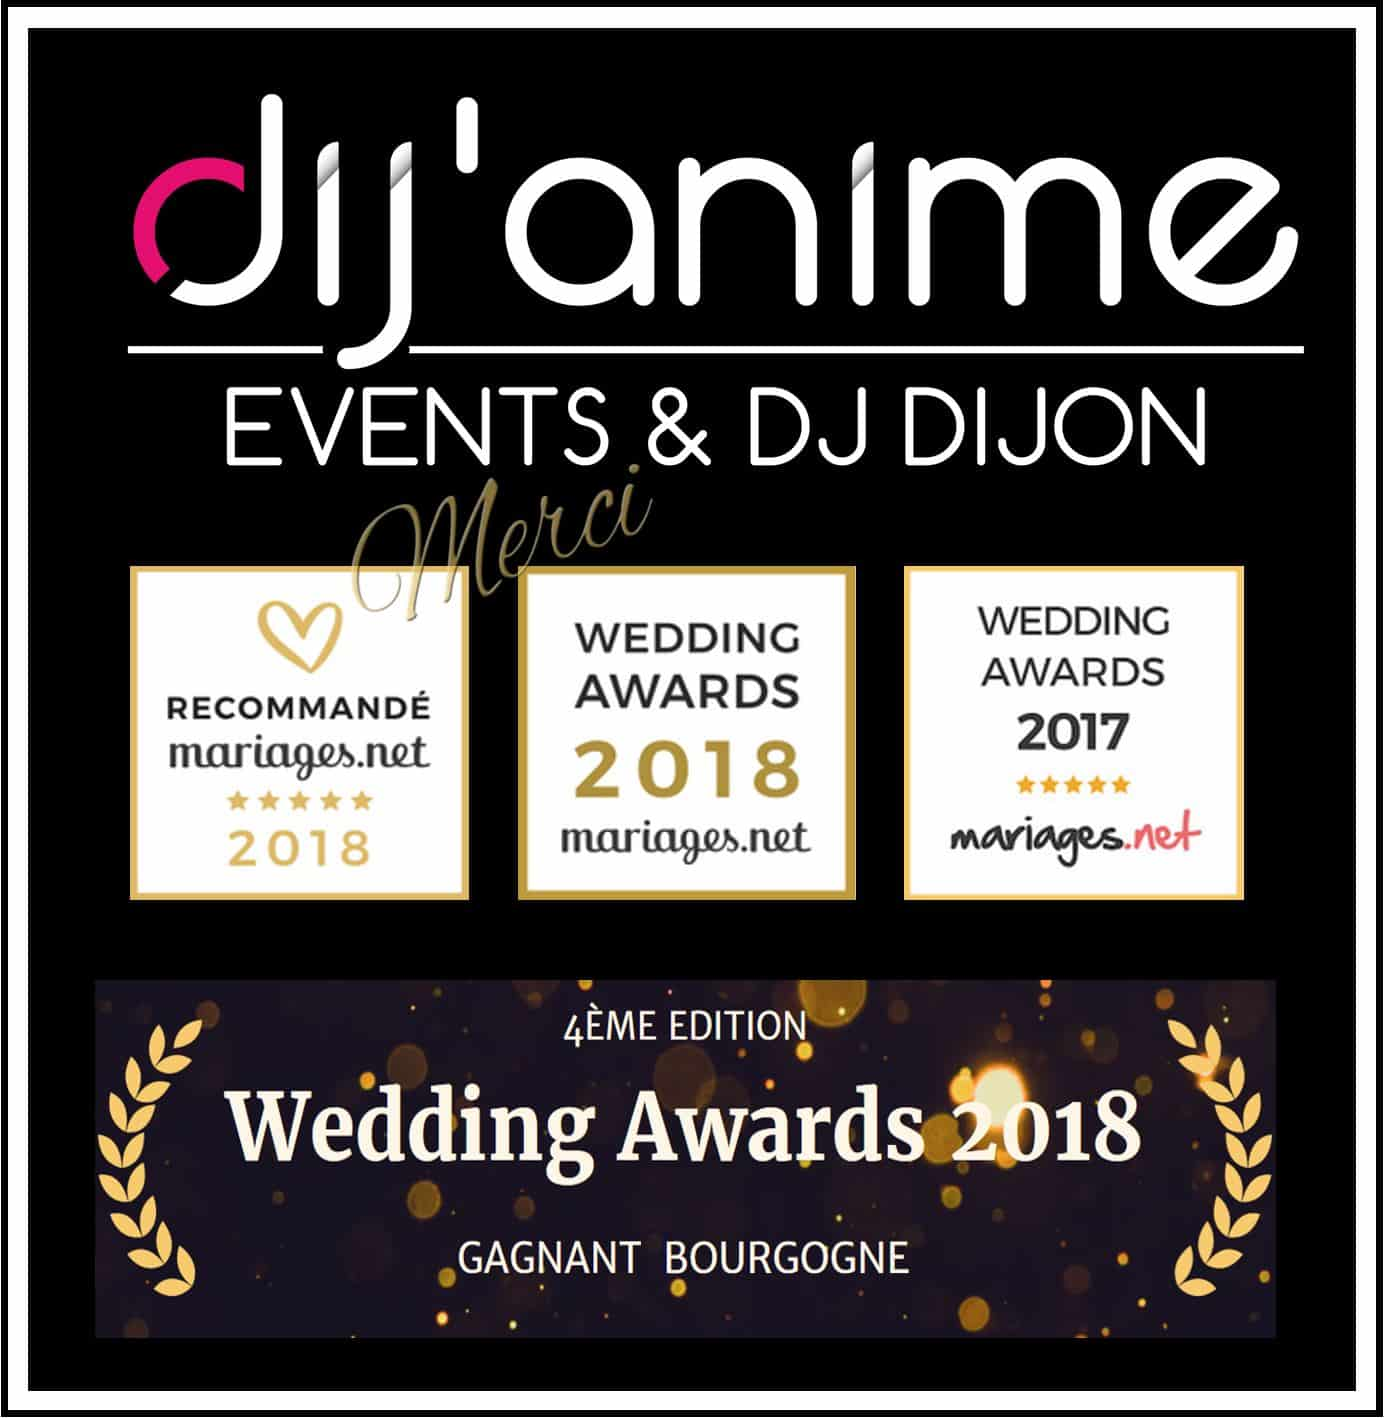 Wedding Awards 2017 2018 2019